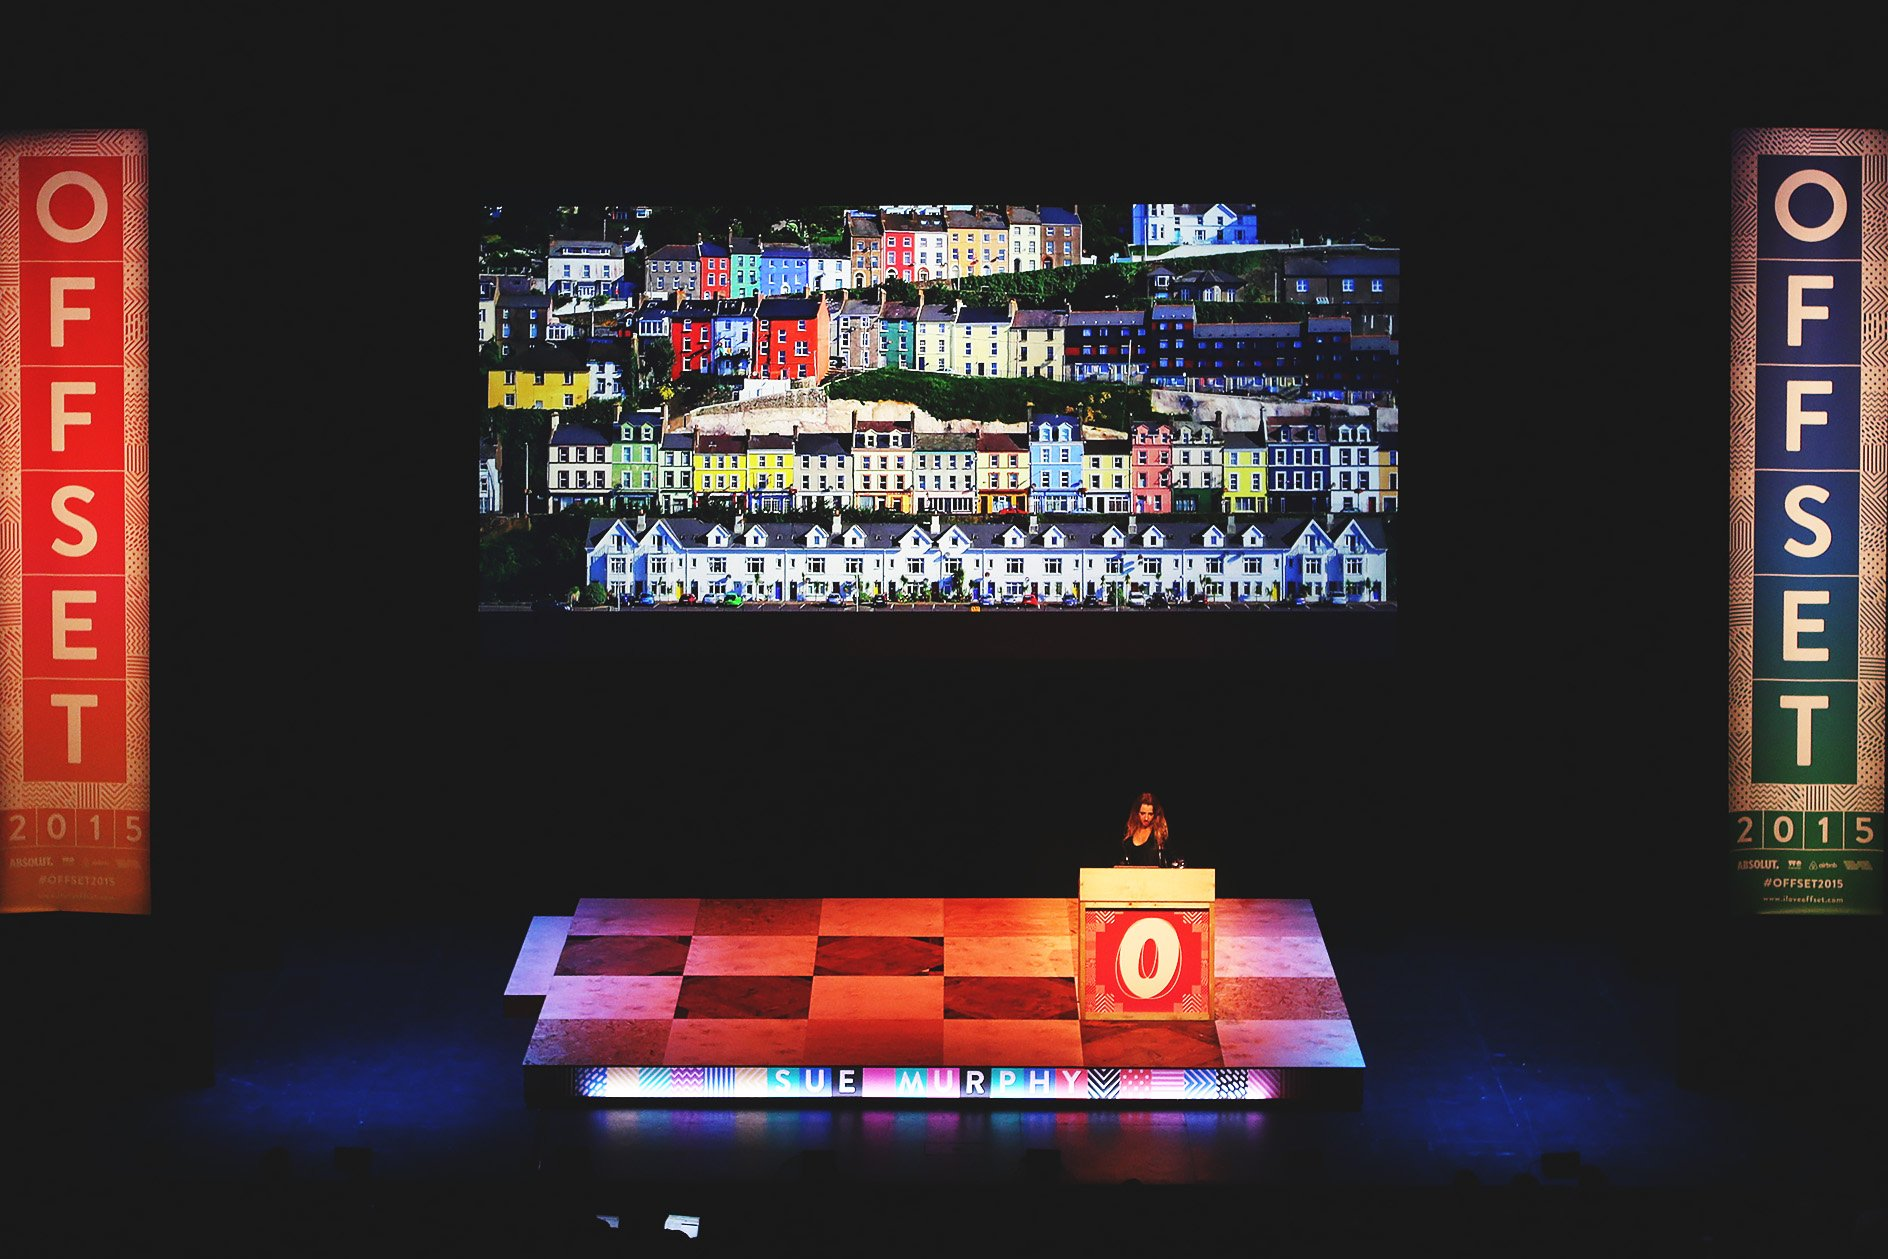 Sue Murphy at OFFSET 2015 - Procrastination